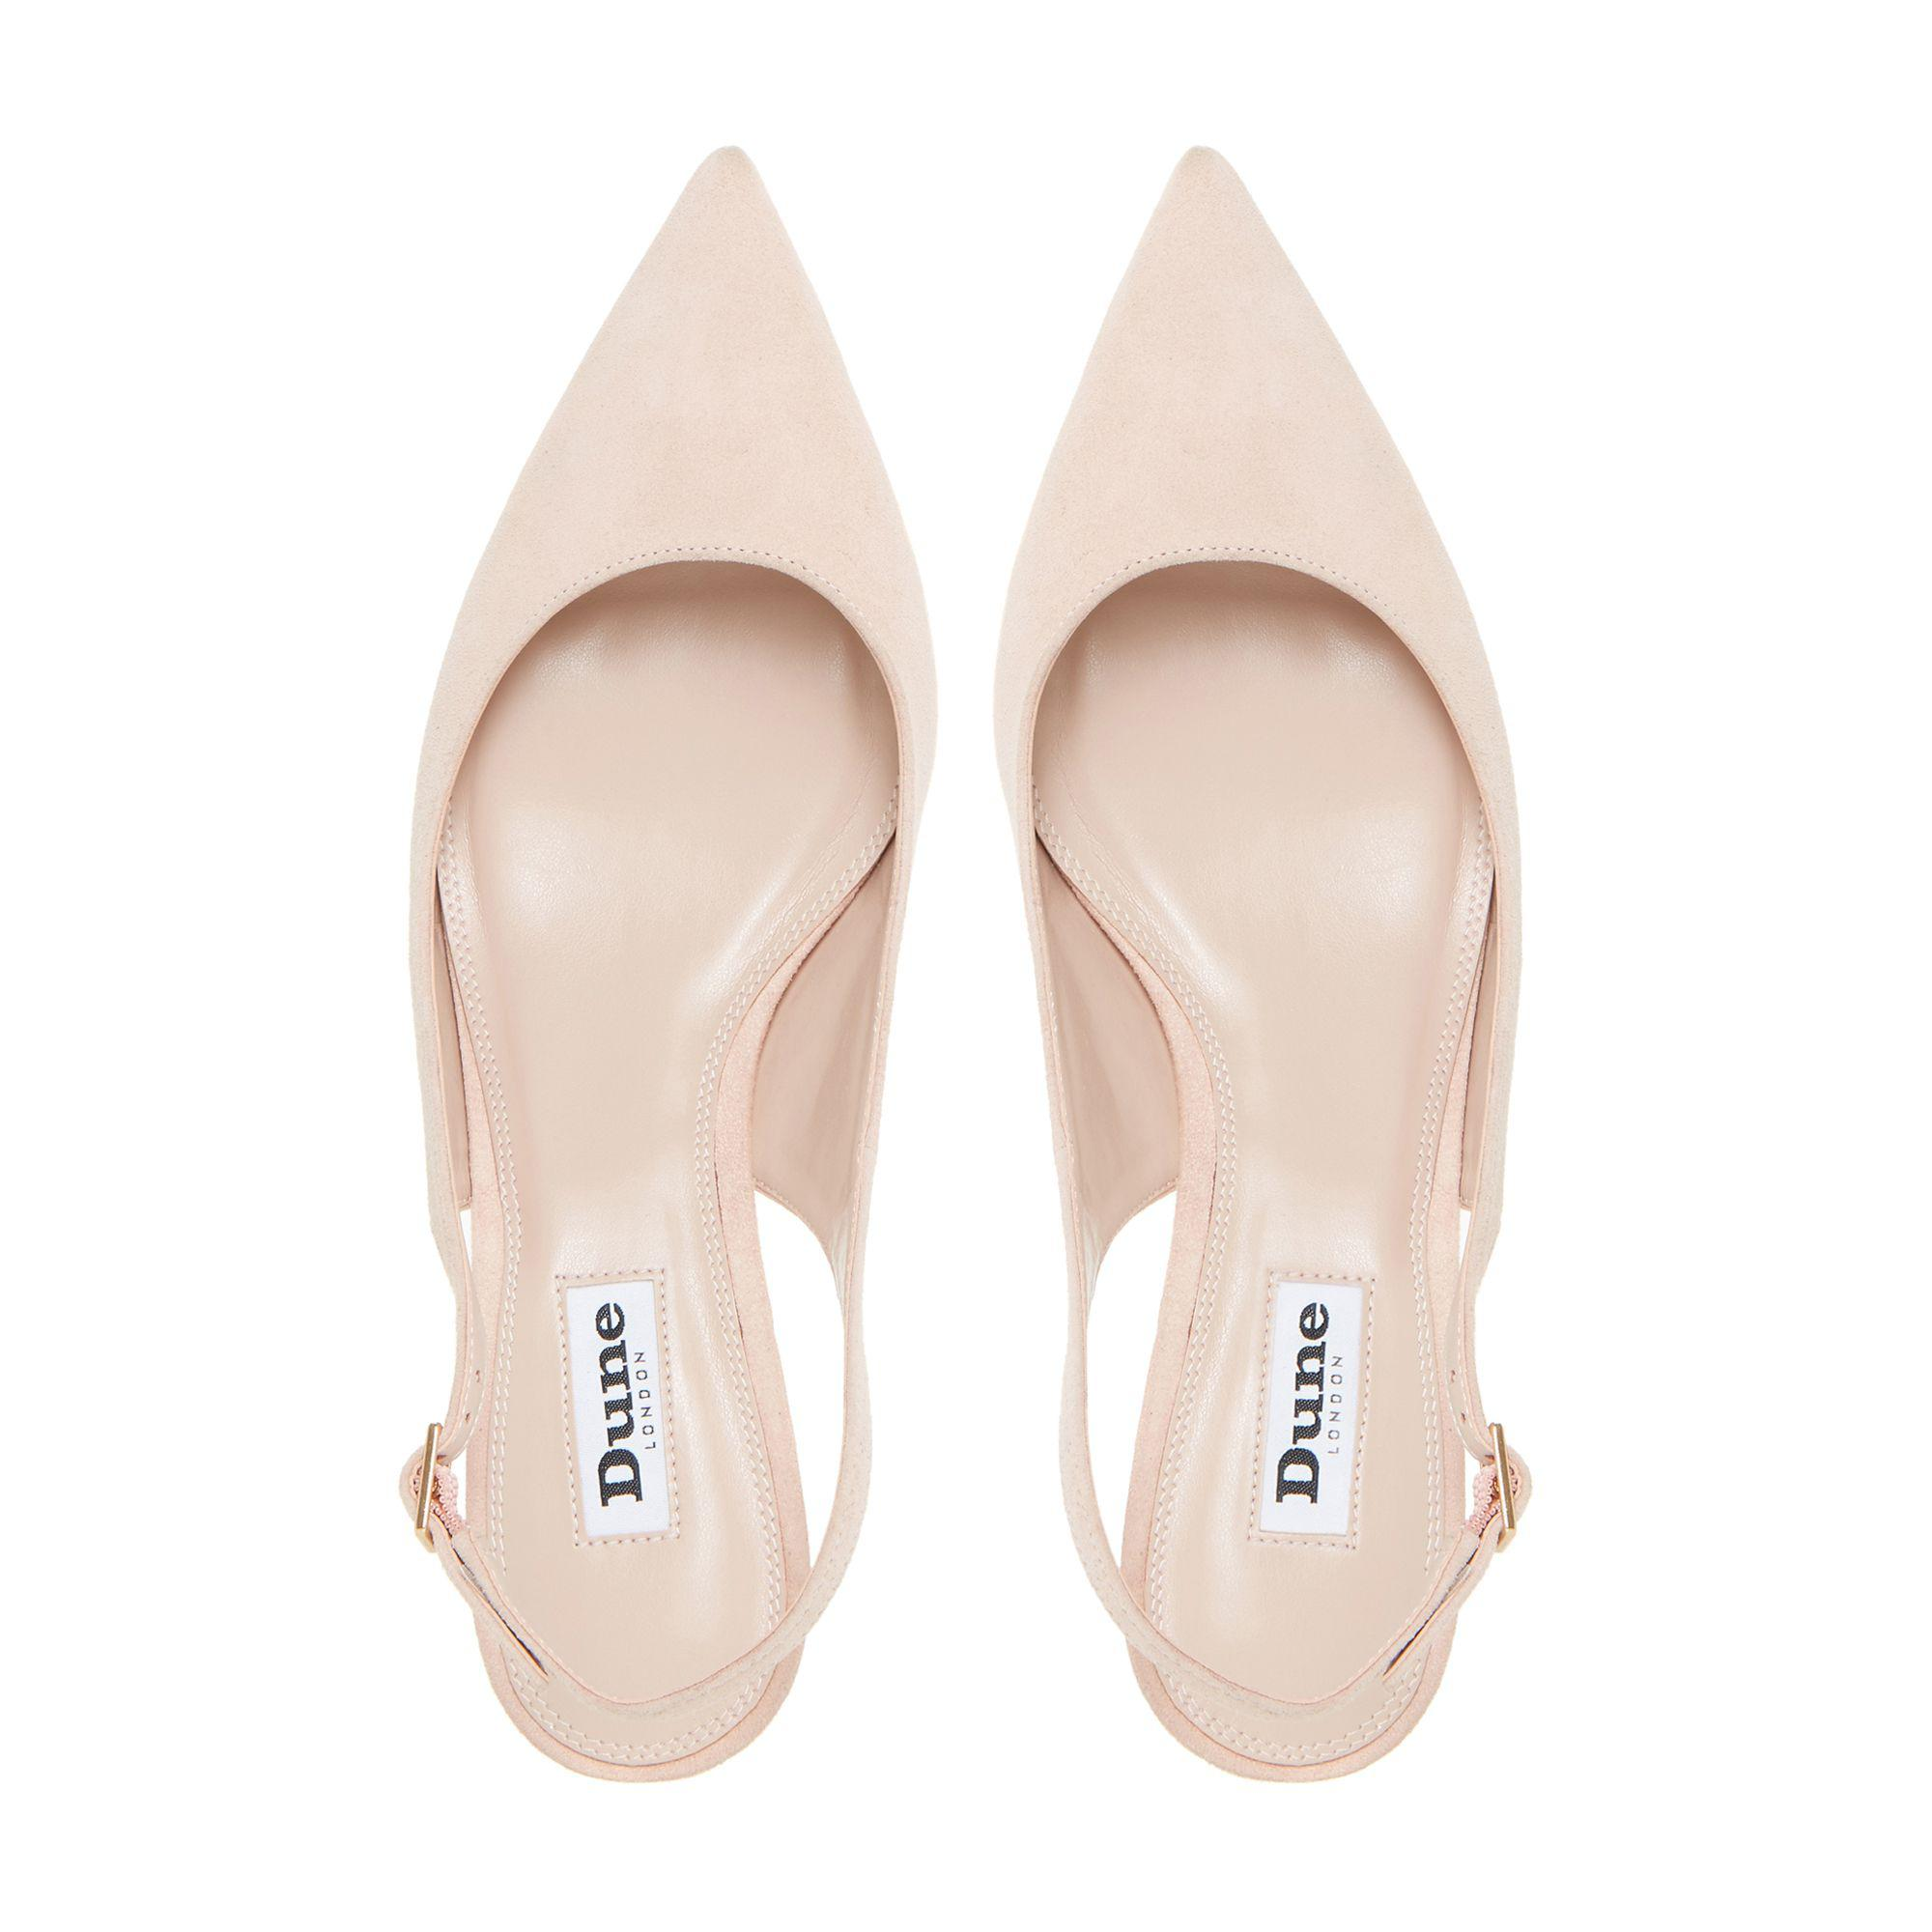 7263b1f3242 Dune - Pink Blush  casandra  Kitten Heel Slingback Court Shoes - Lyst. View  fullscreen